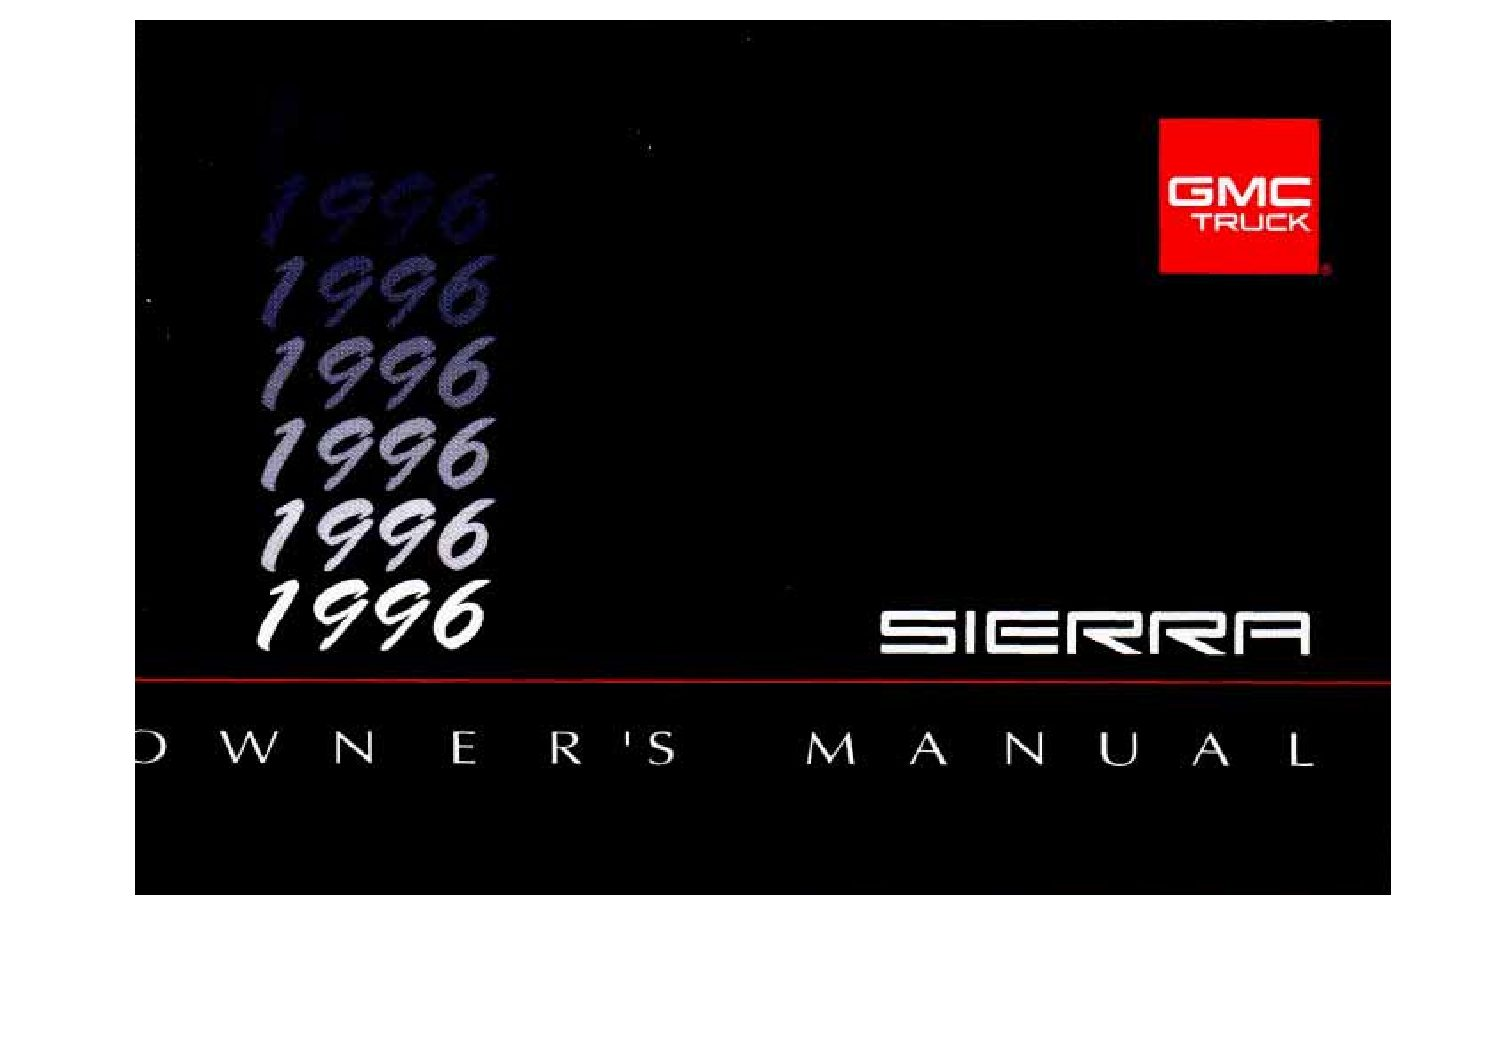 2002 gmc sierra owners manual